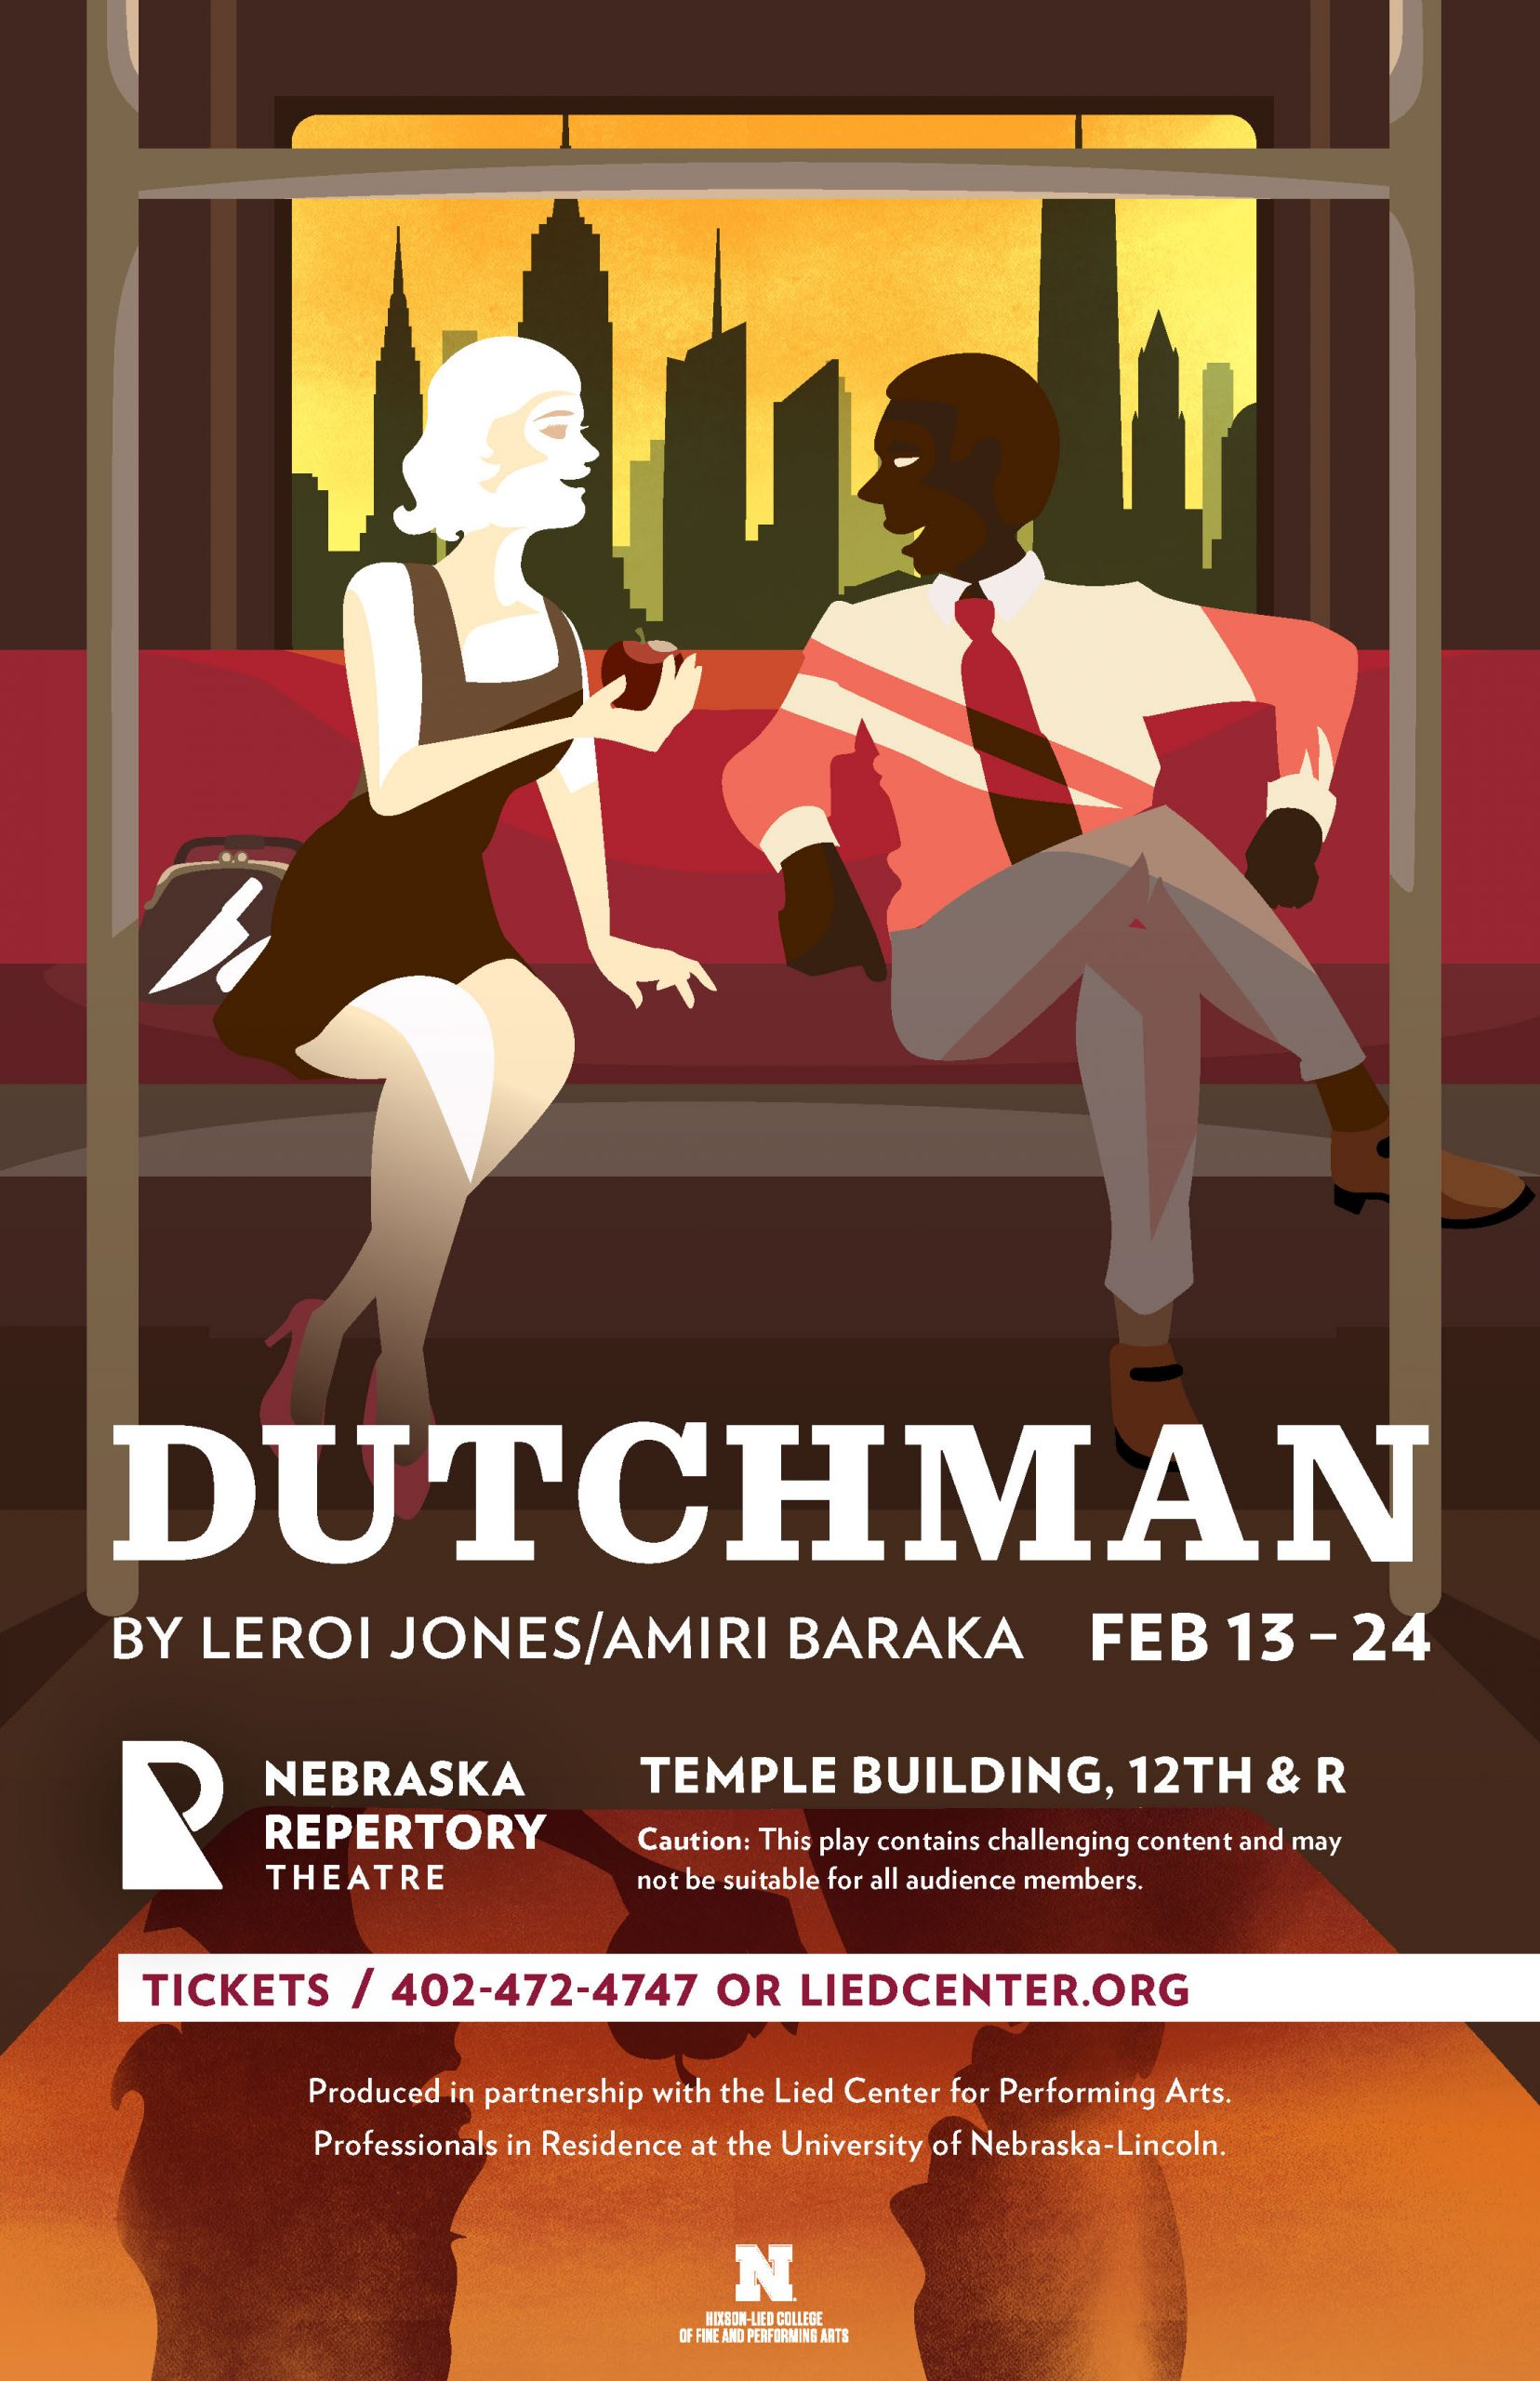 A poster depicting a black man and a white woman on a subway train with the headline 'Dutchman'. The woman is leaning forward holding an apple, and a knife can be seen in her purse sitting next to her.